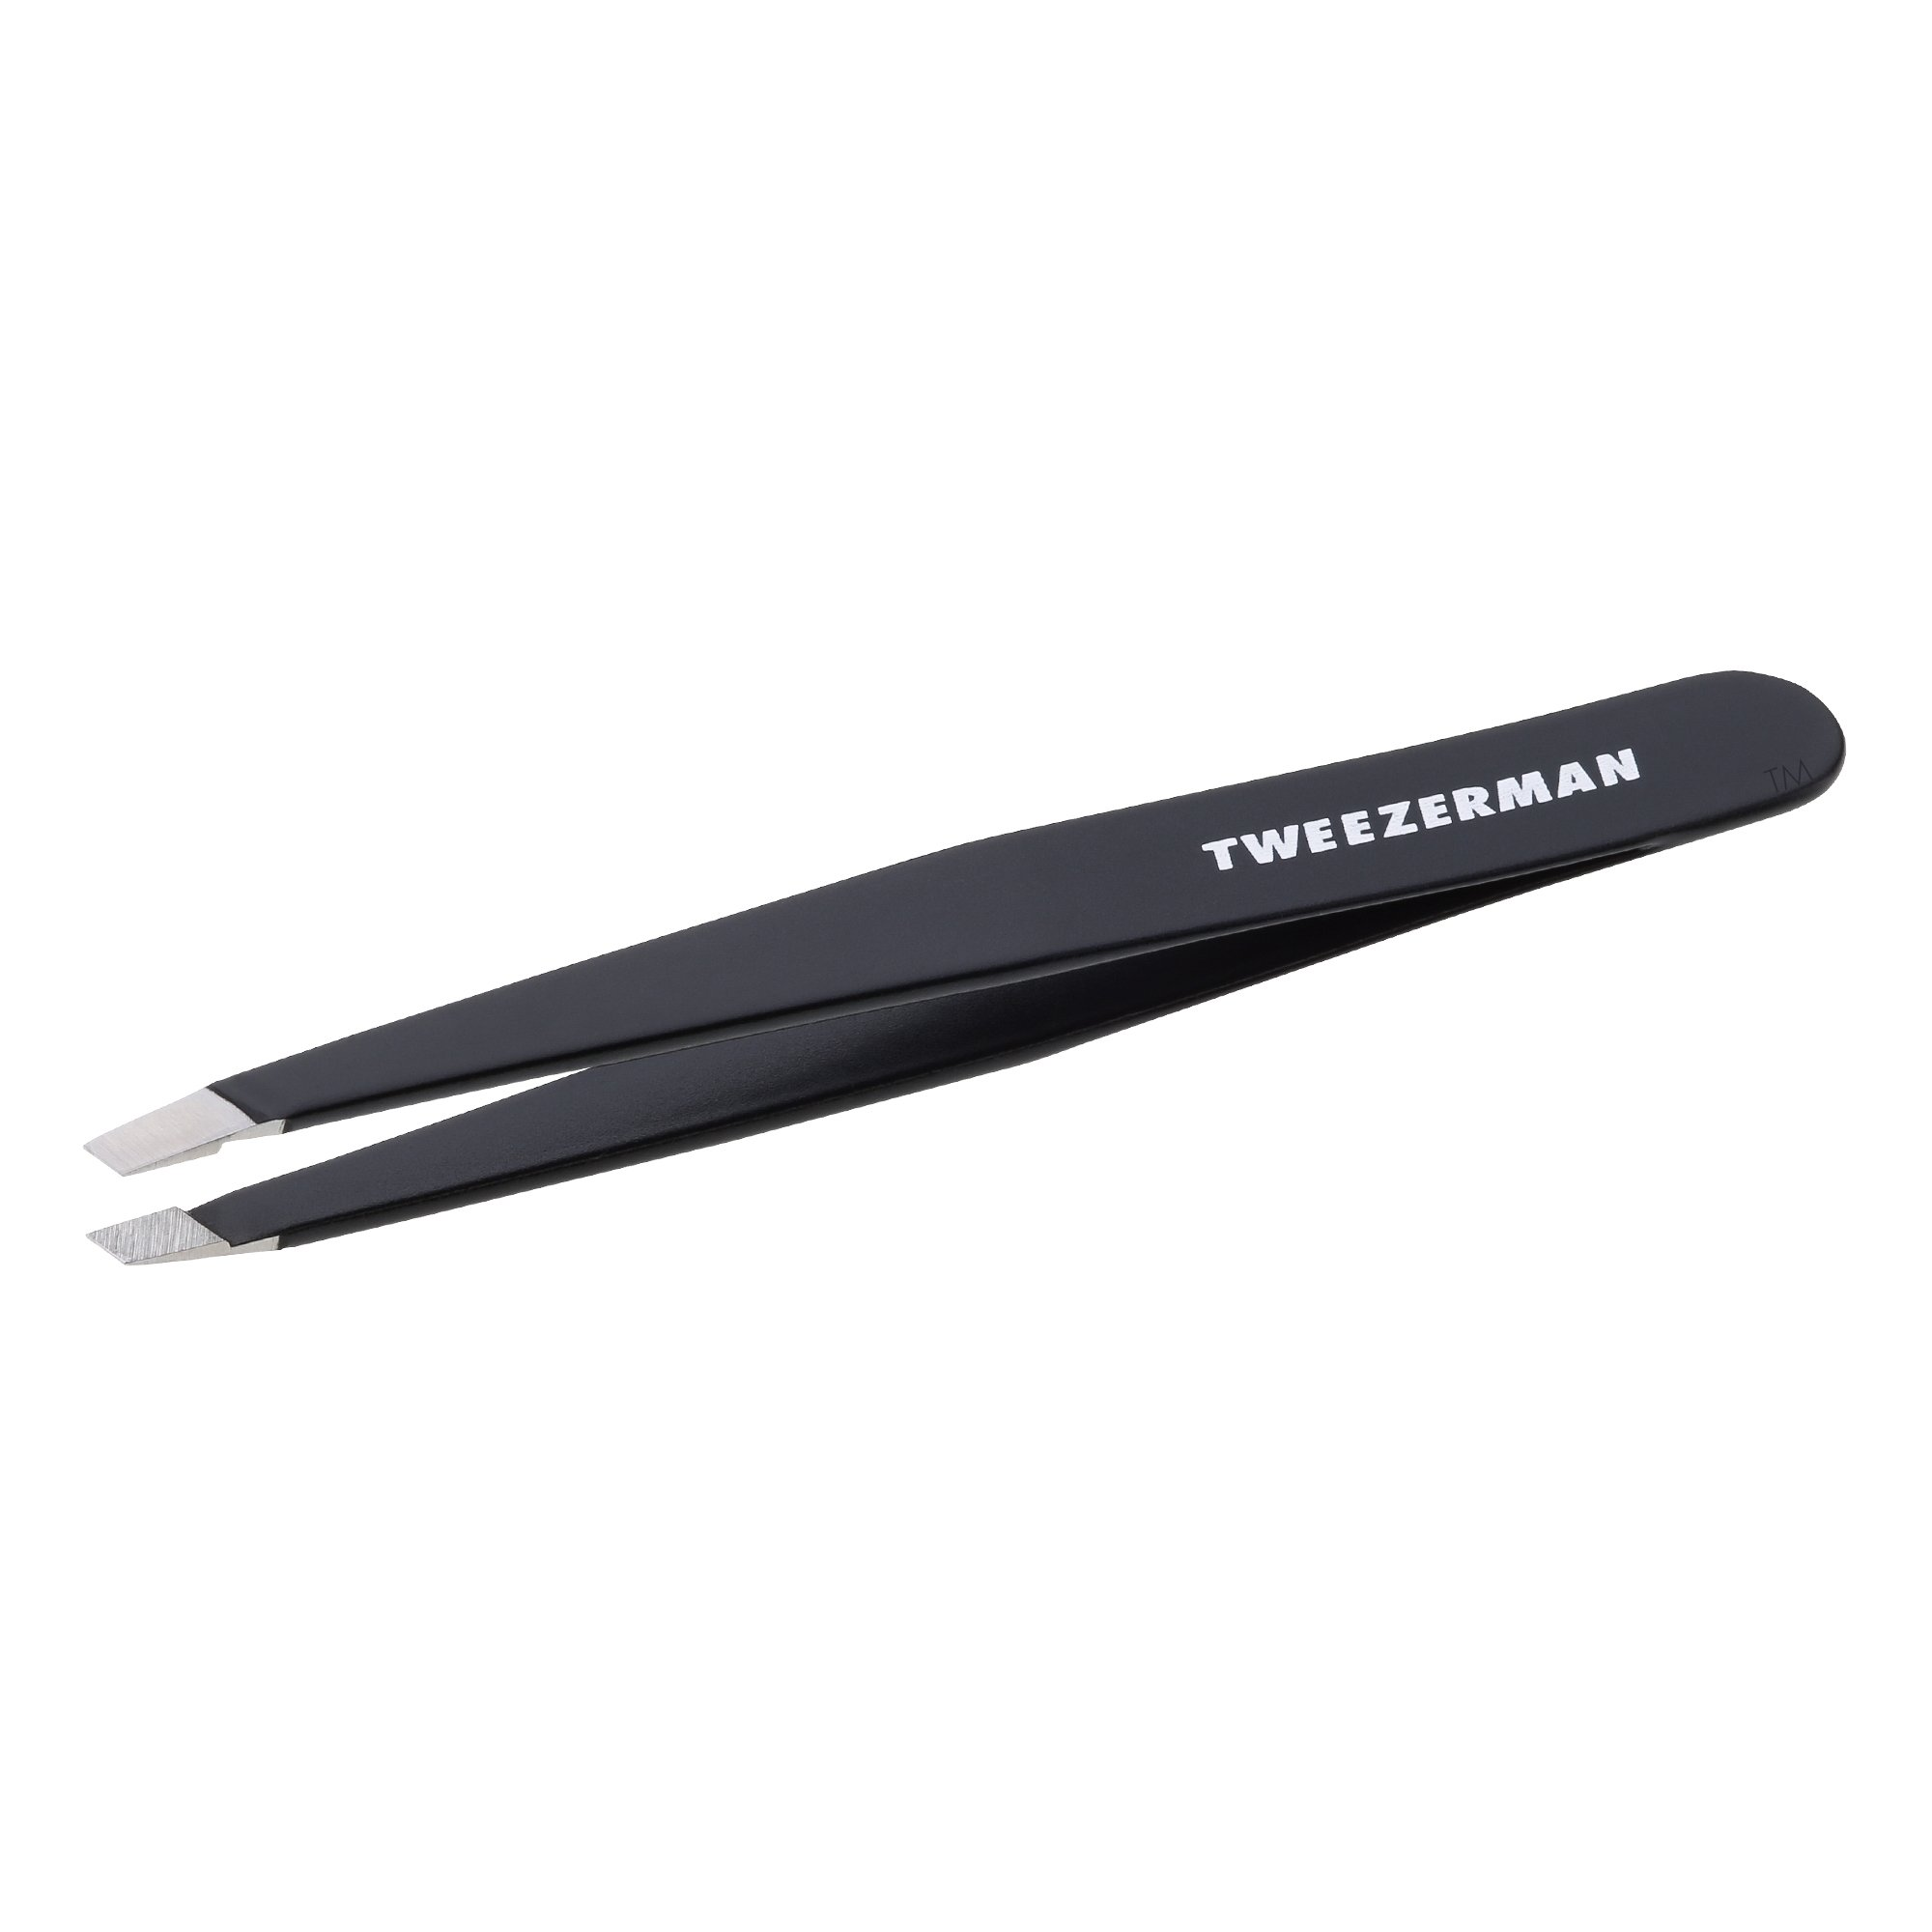 Tweezerman Stainless Steel Slant Tweezer (Black)